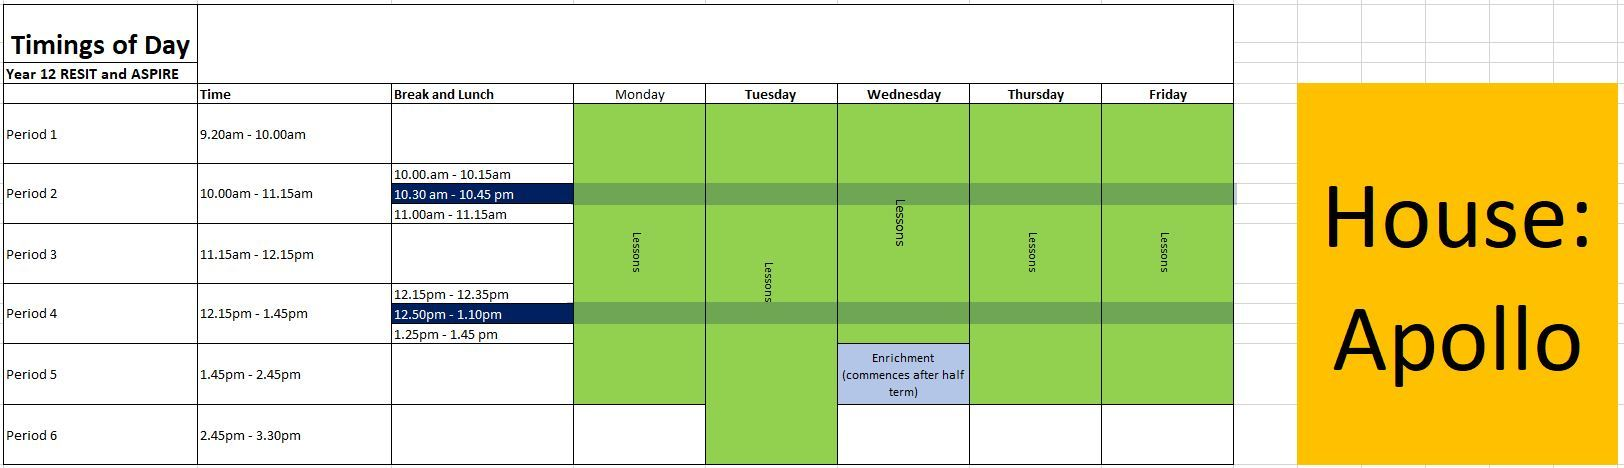 Timings of day aspire and yr 12